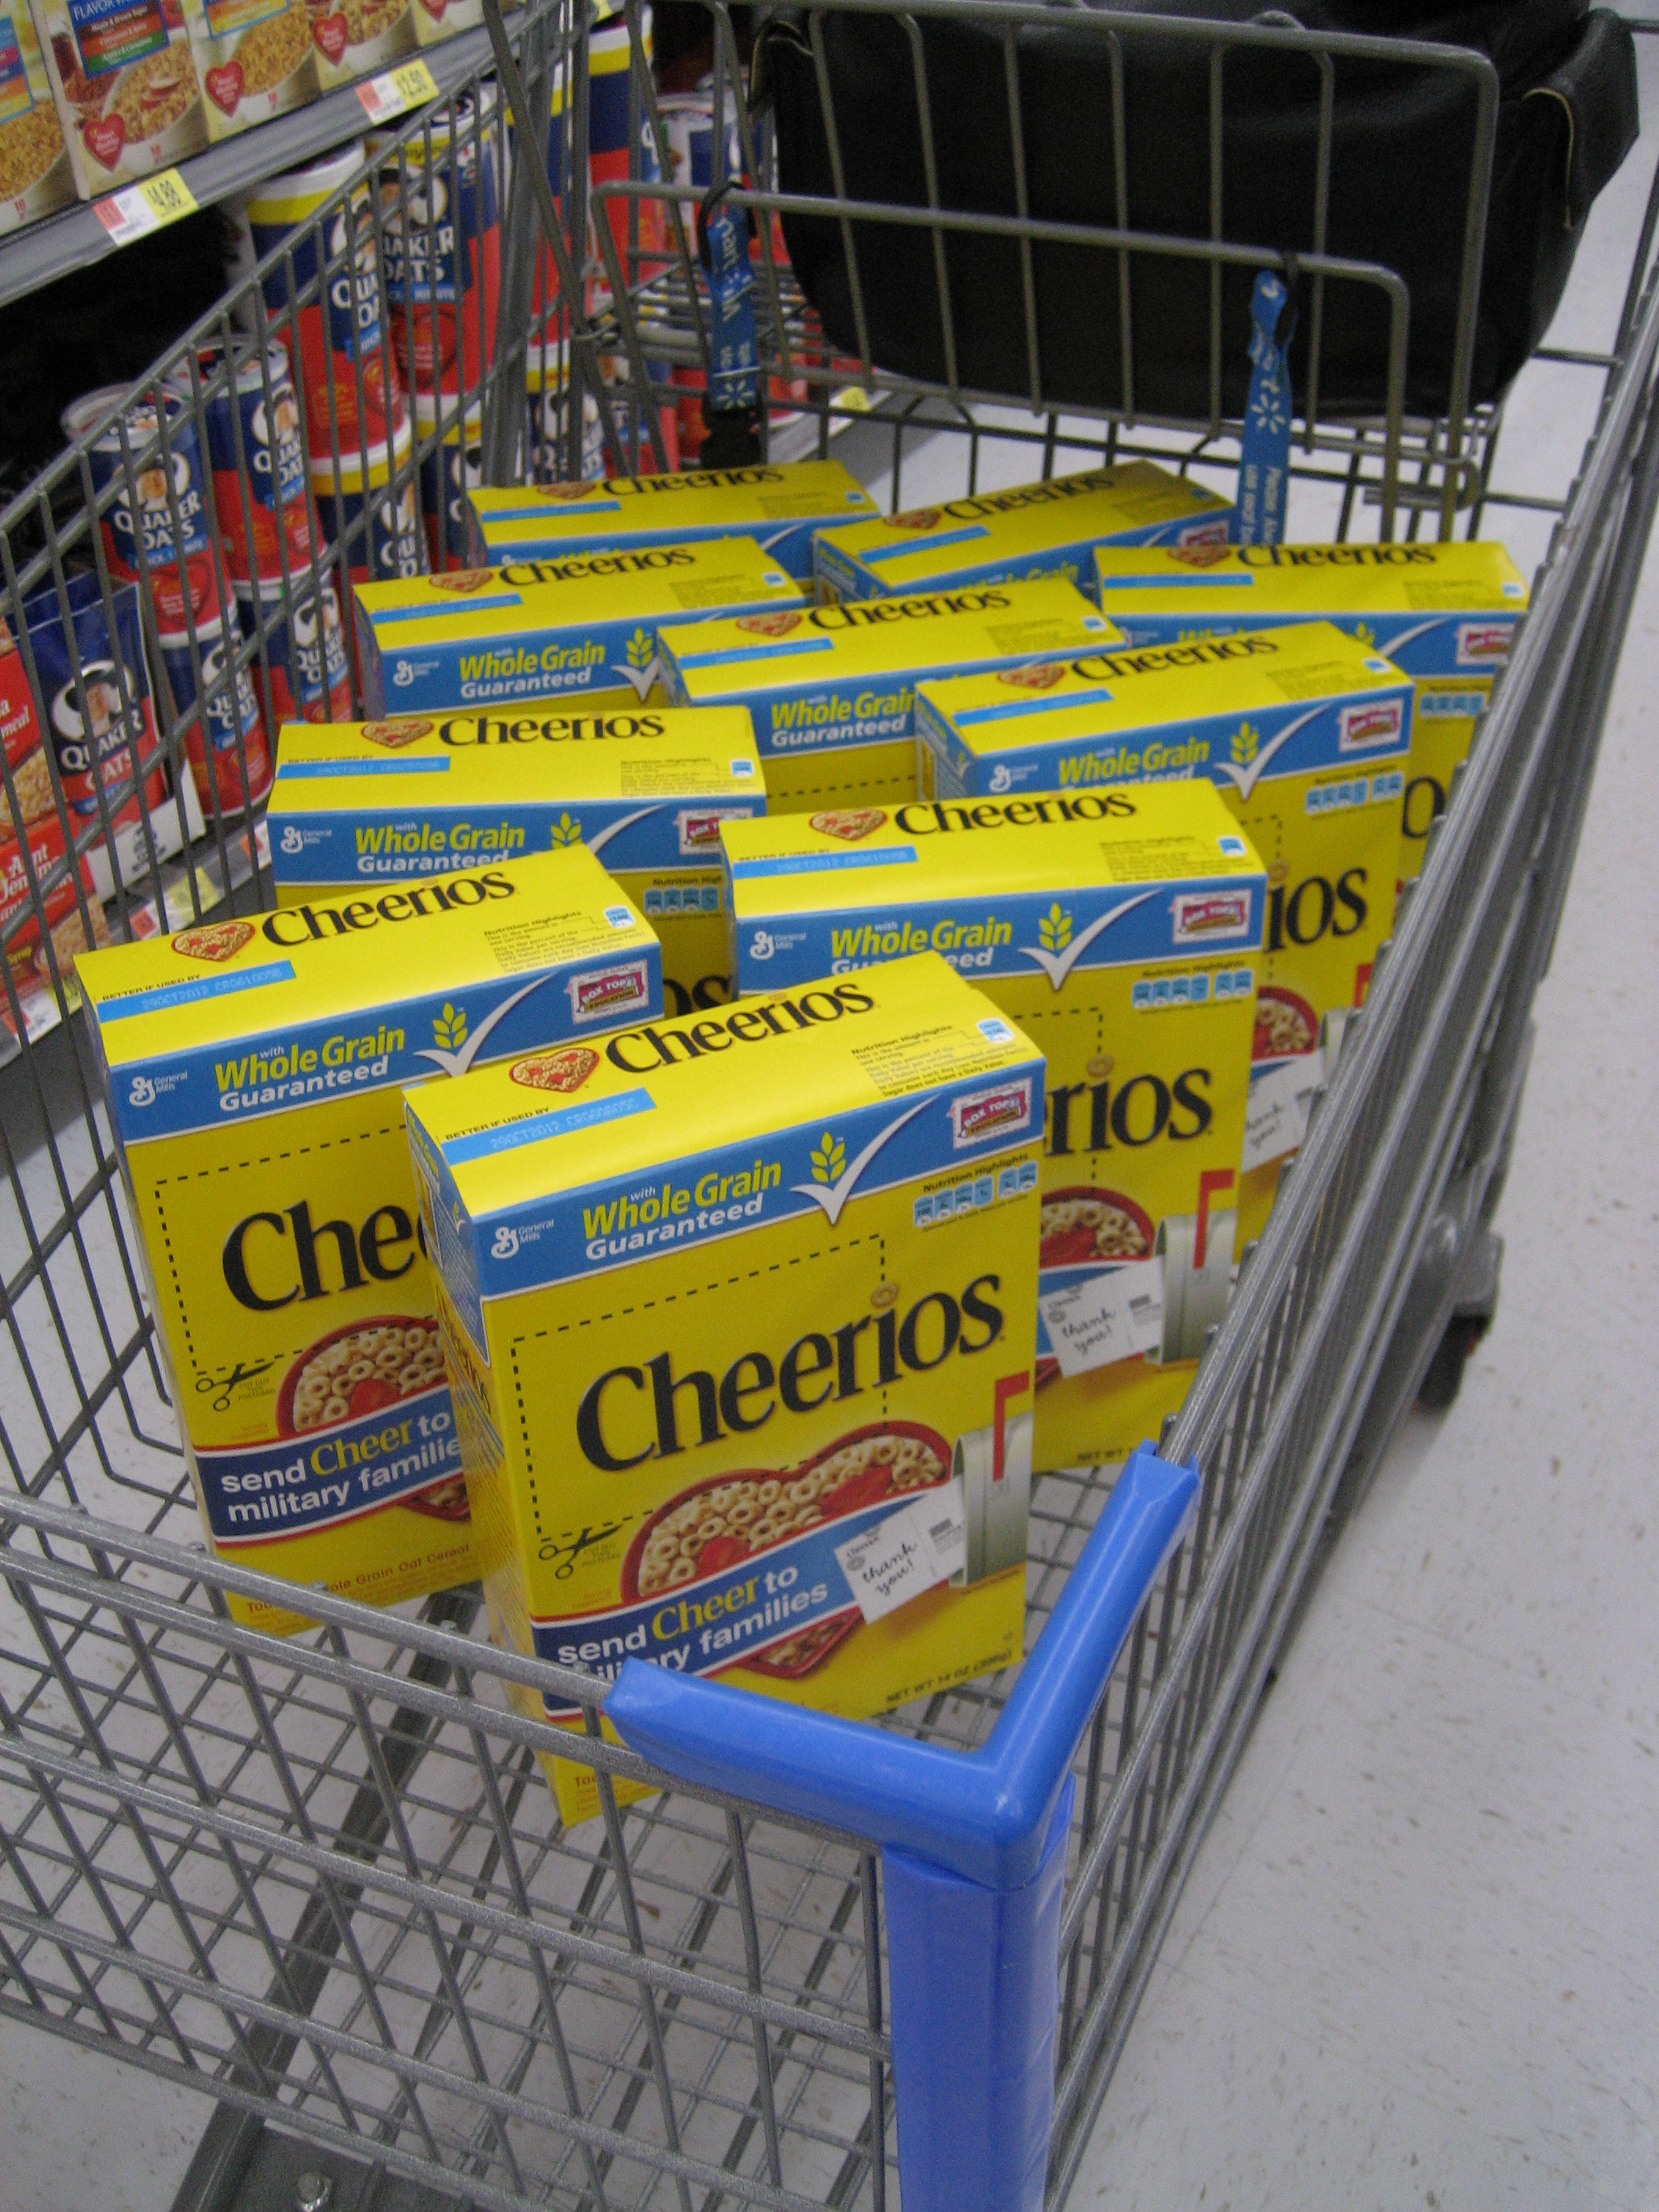 Sending More Cheer to Military Families With the Help of #Cheerios ...